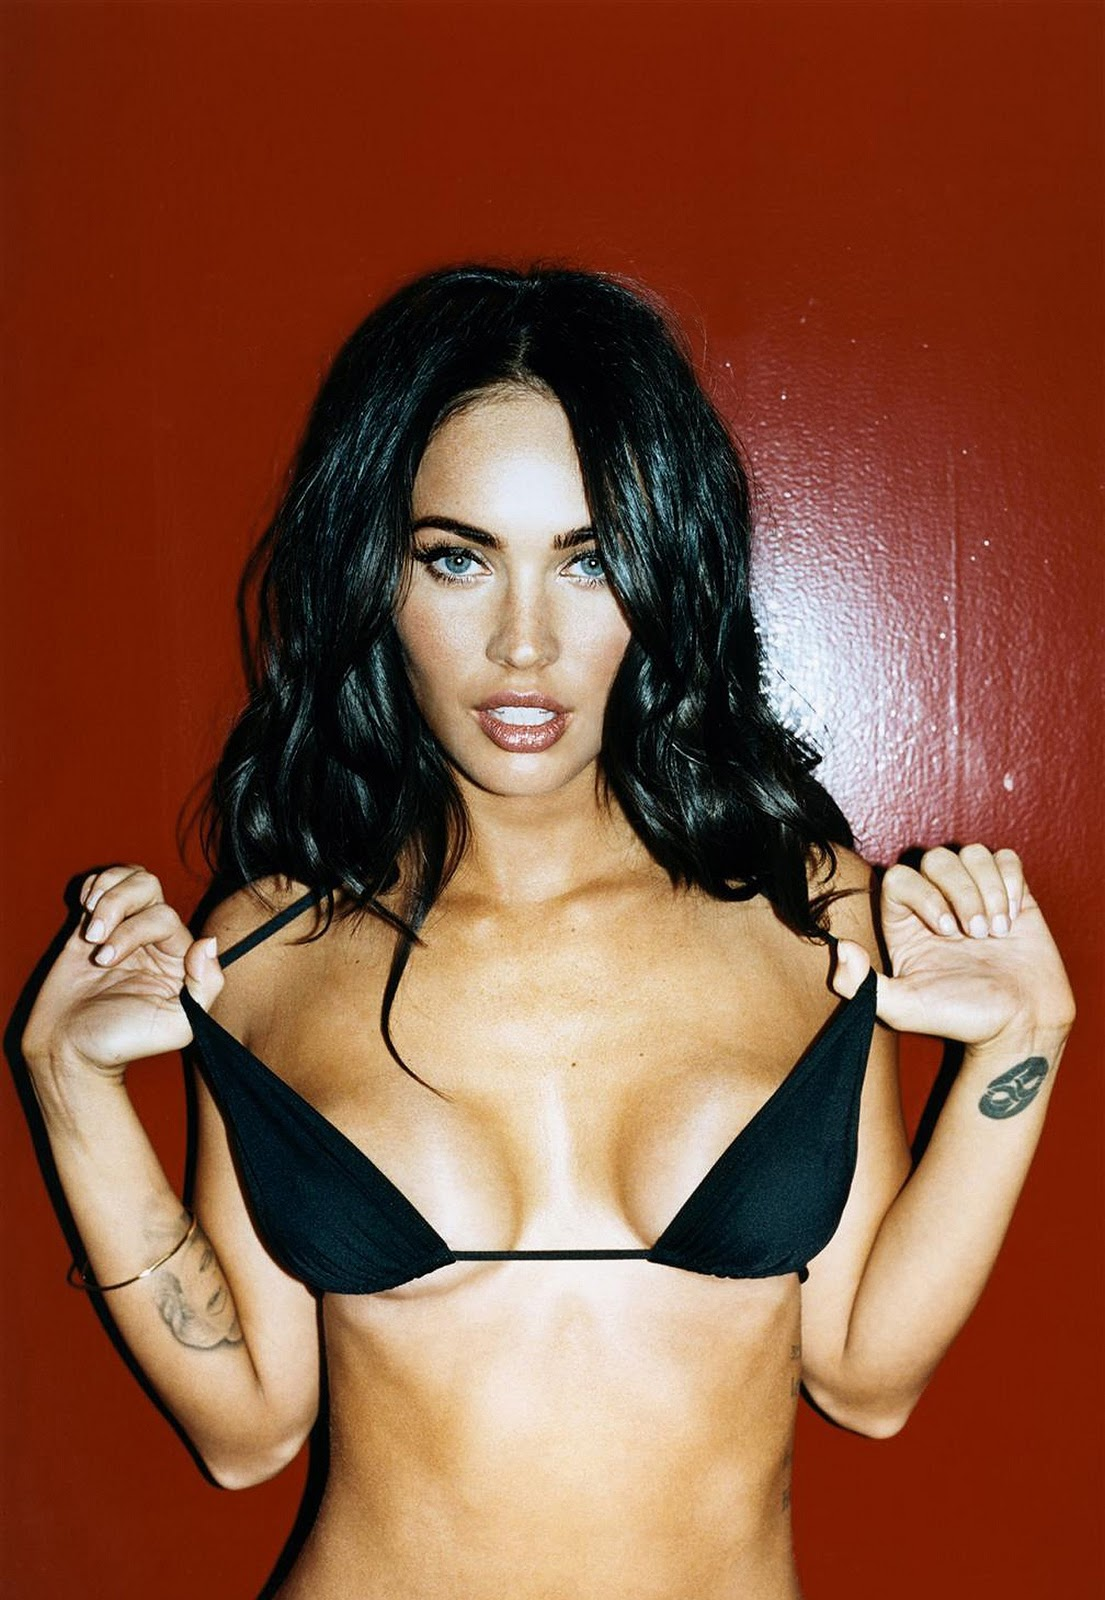 Foxy megan megan fox gq magazine oct 2008 for Naked moving pictures